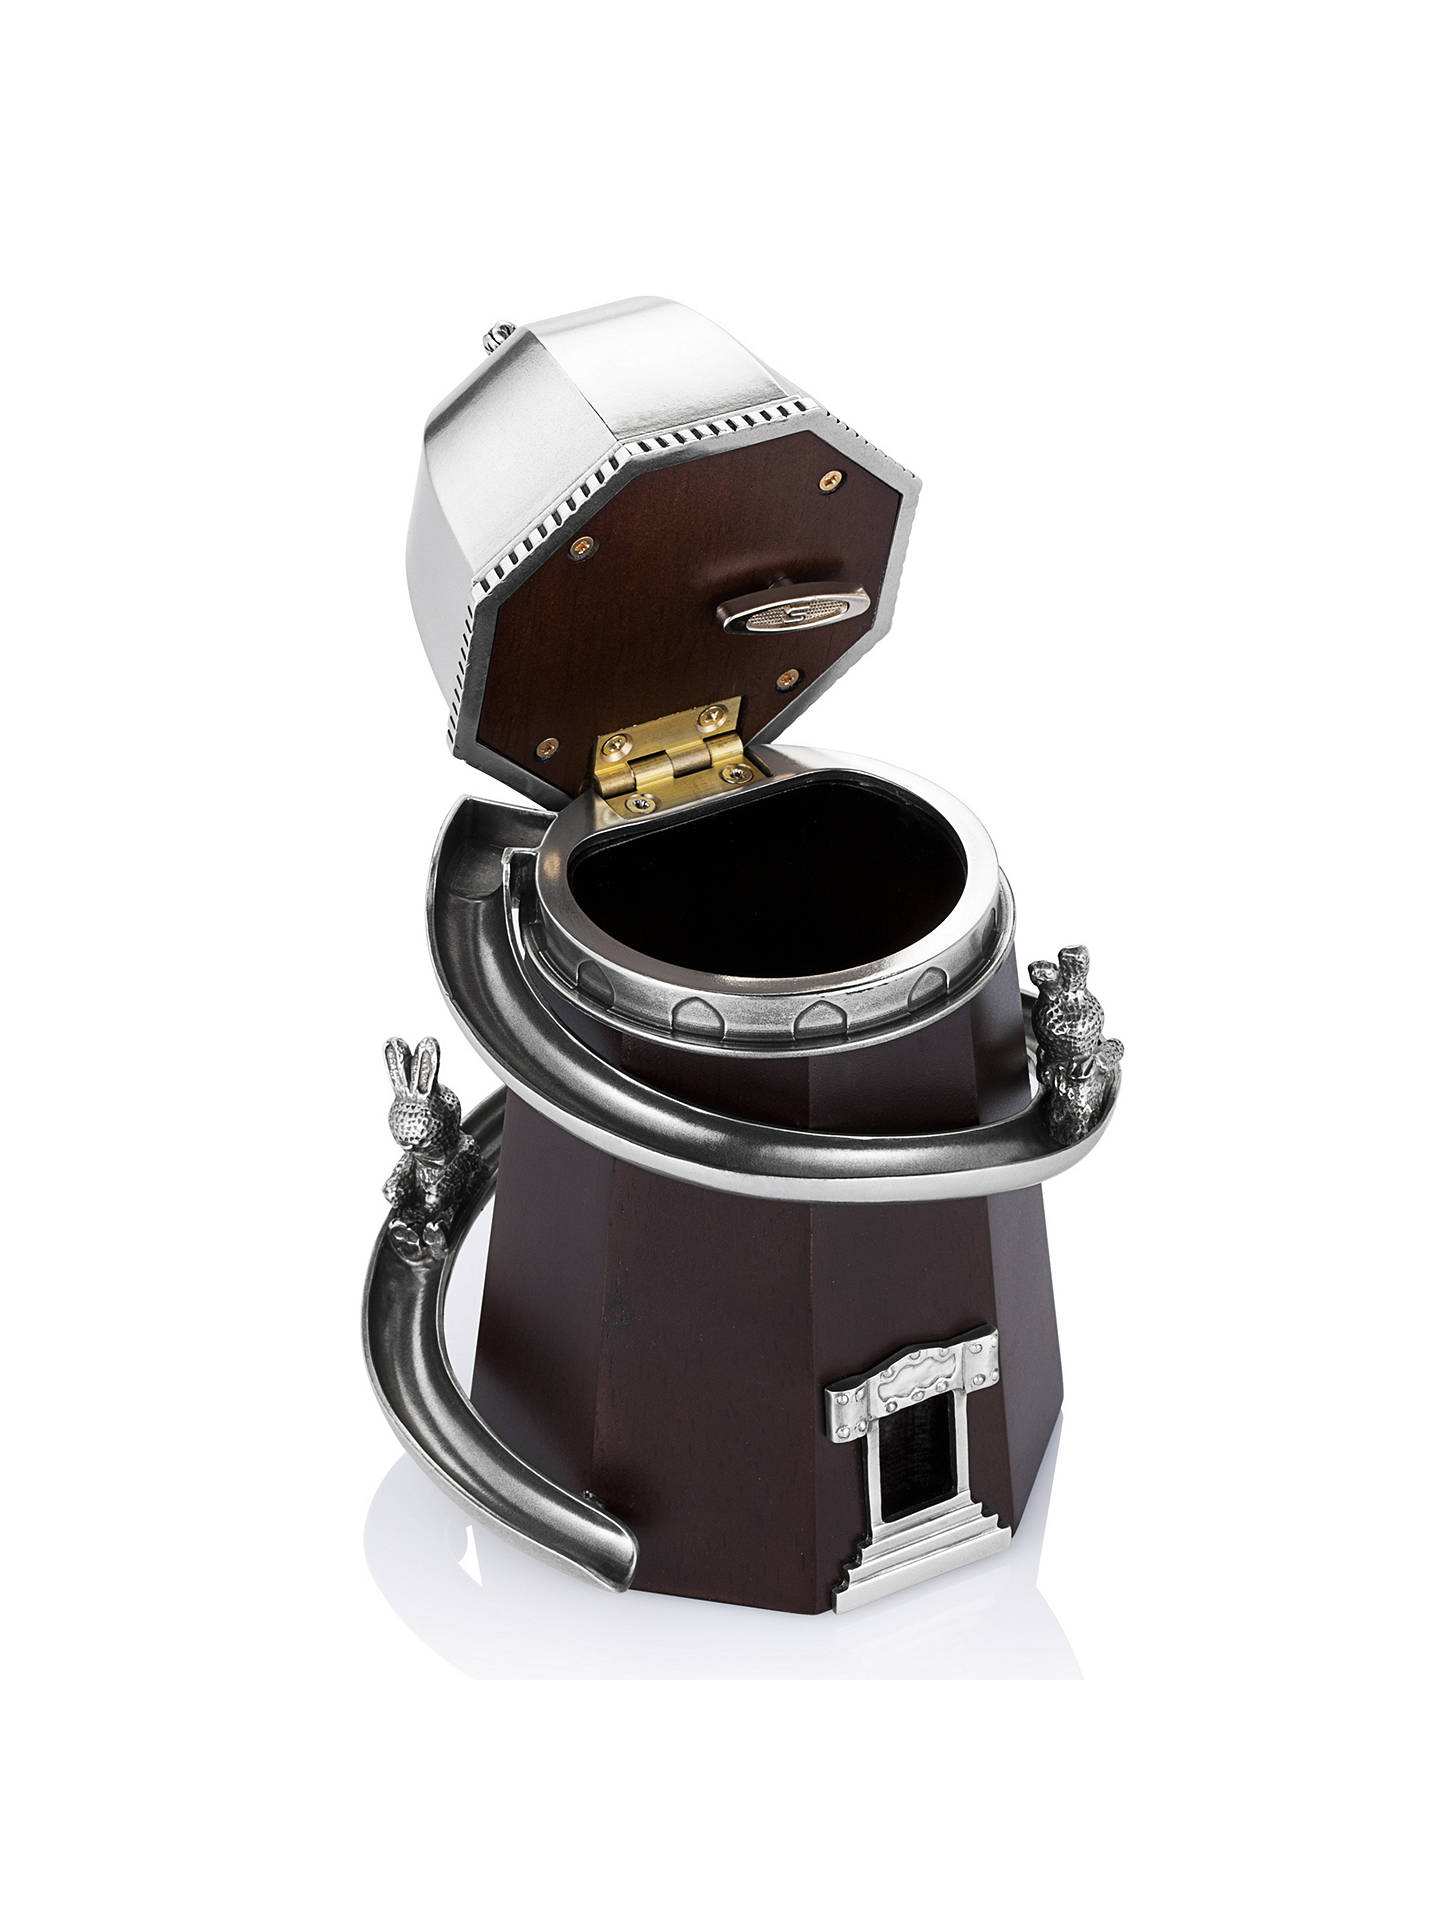 BuyRoyal Selangor Helter Skelter Music Box, Silver Online at johnlewis.com